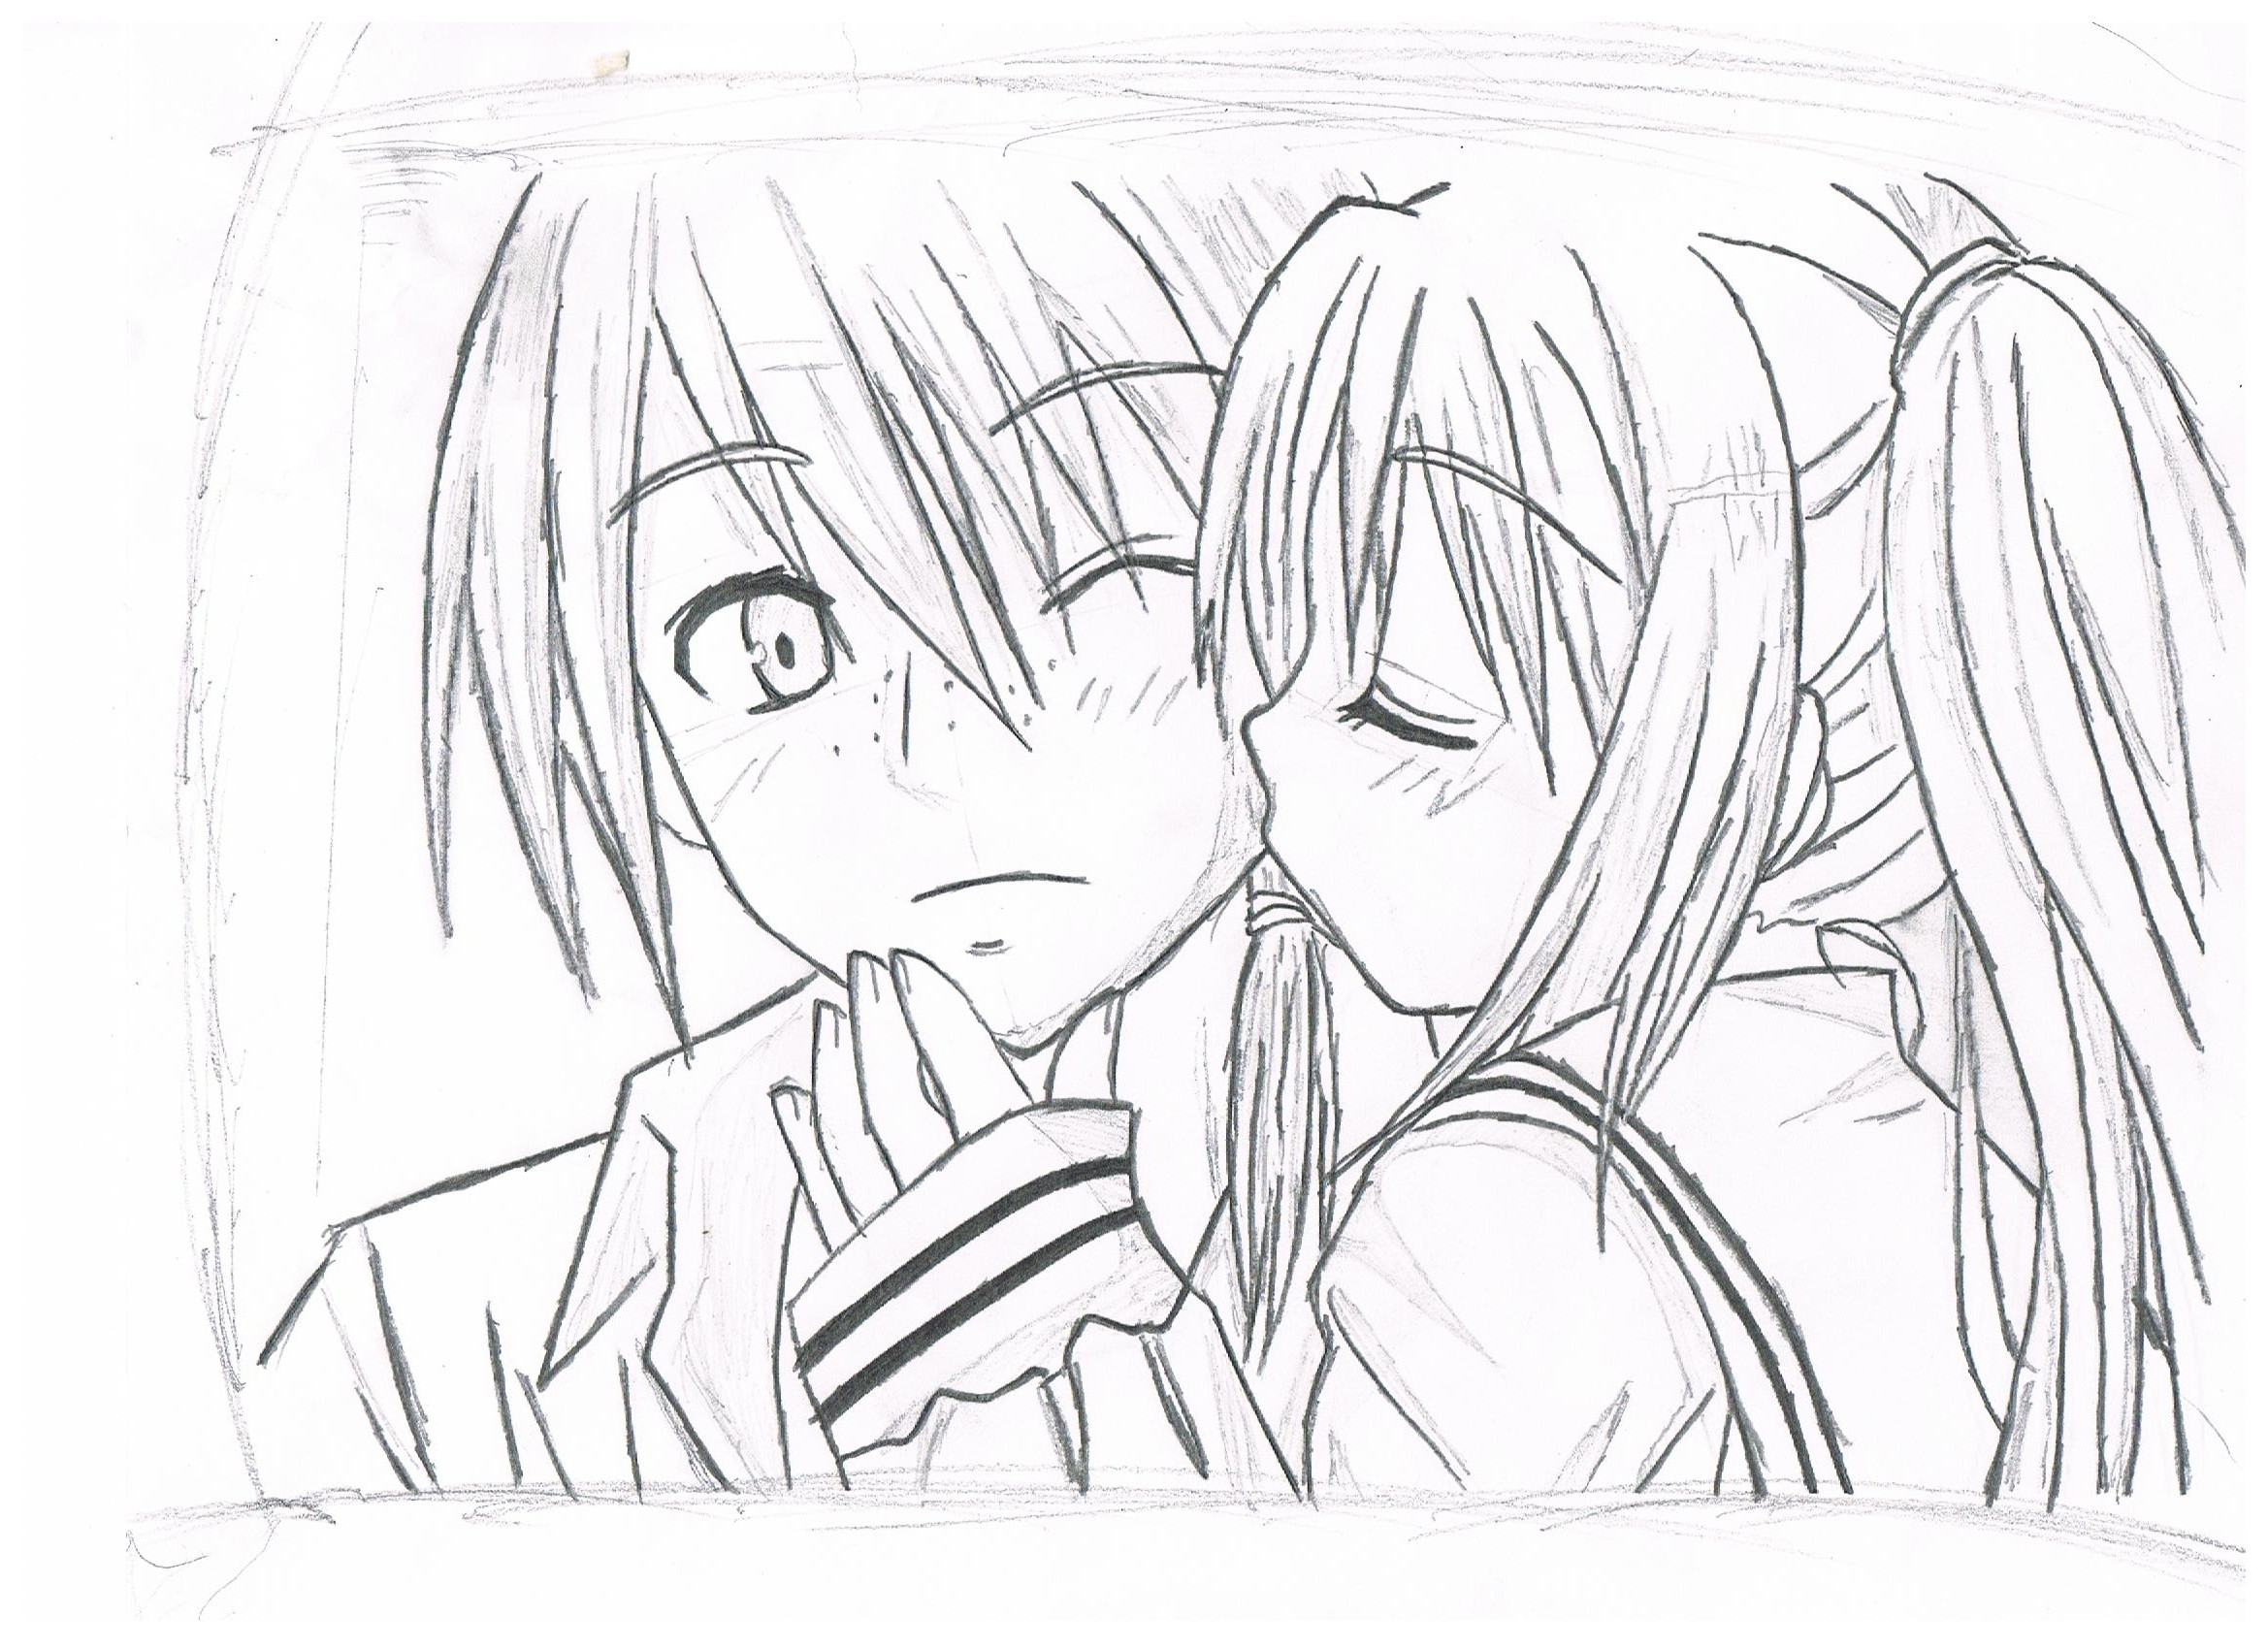 Anime emo girl drawing at getdrawings free for personal use 2338x1700 boy and girl in love anime sketch best 25 emo anime girl ideas on voltagebd Choice Image